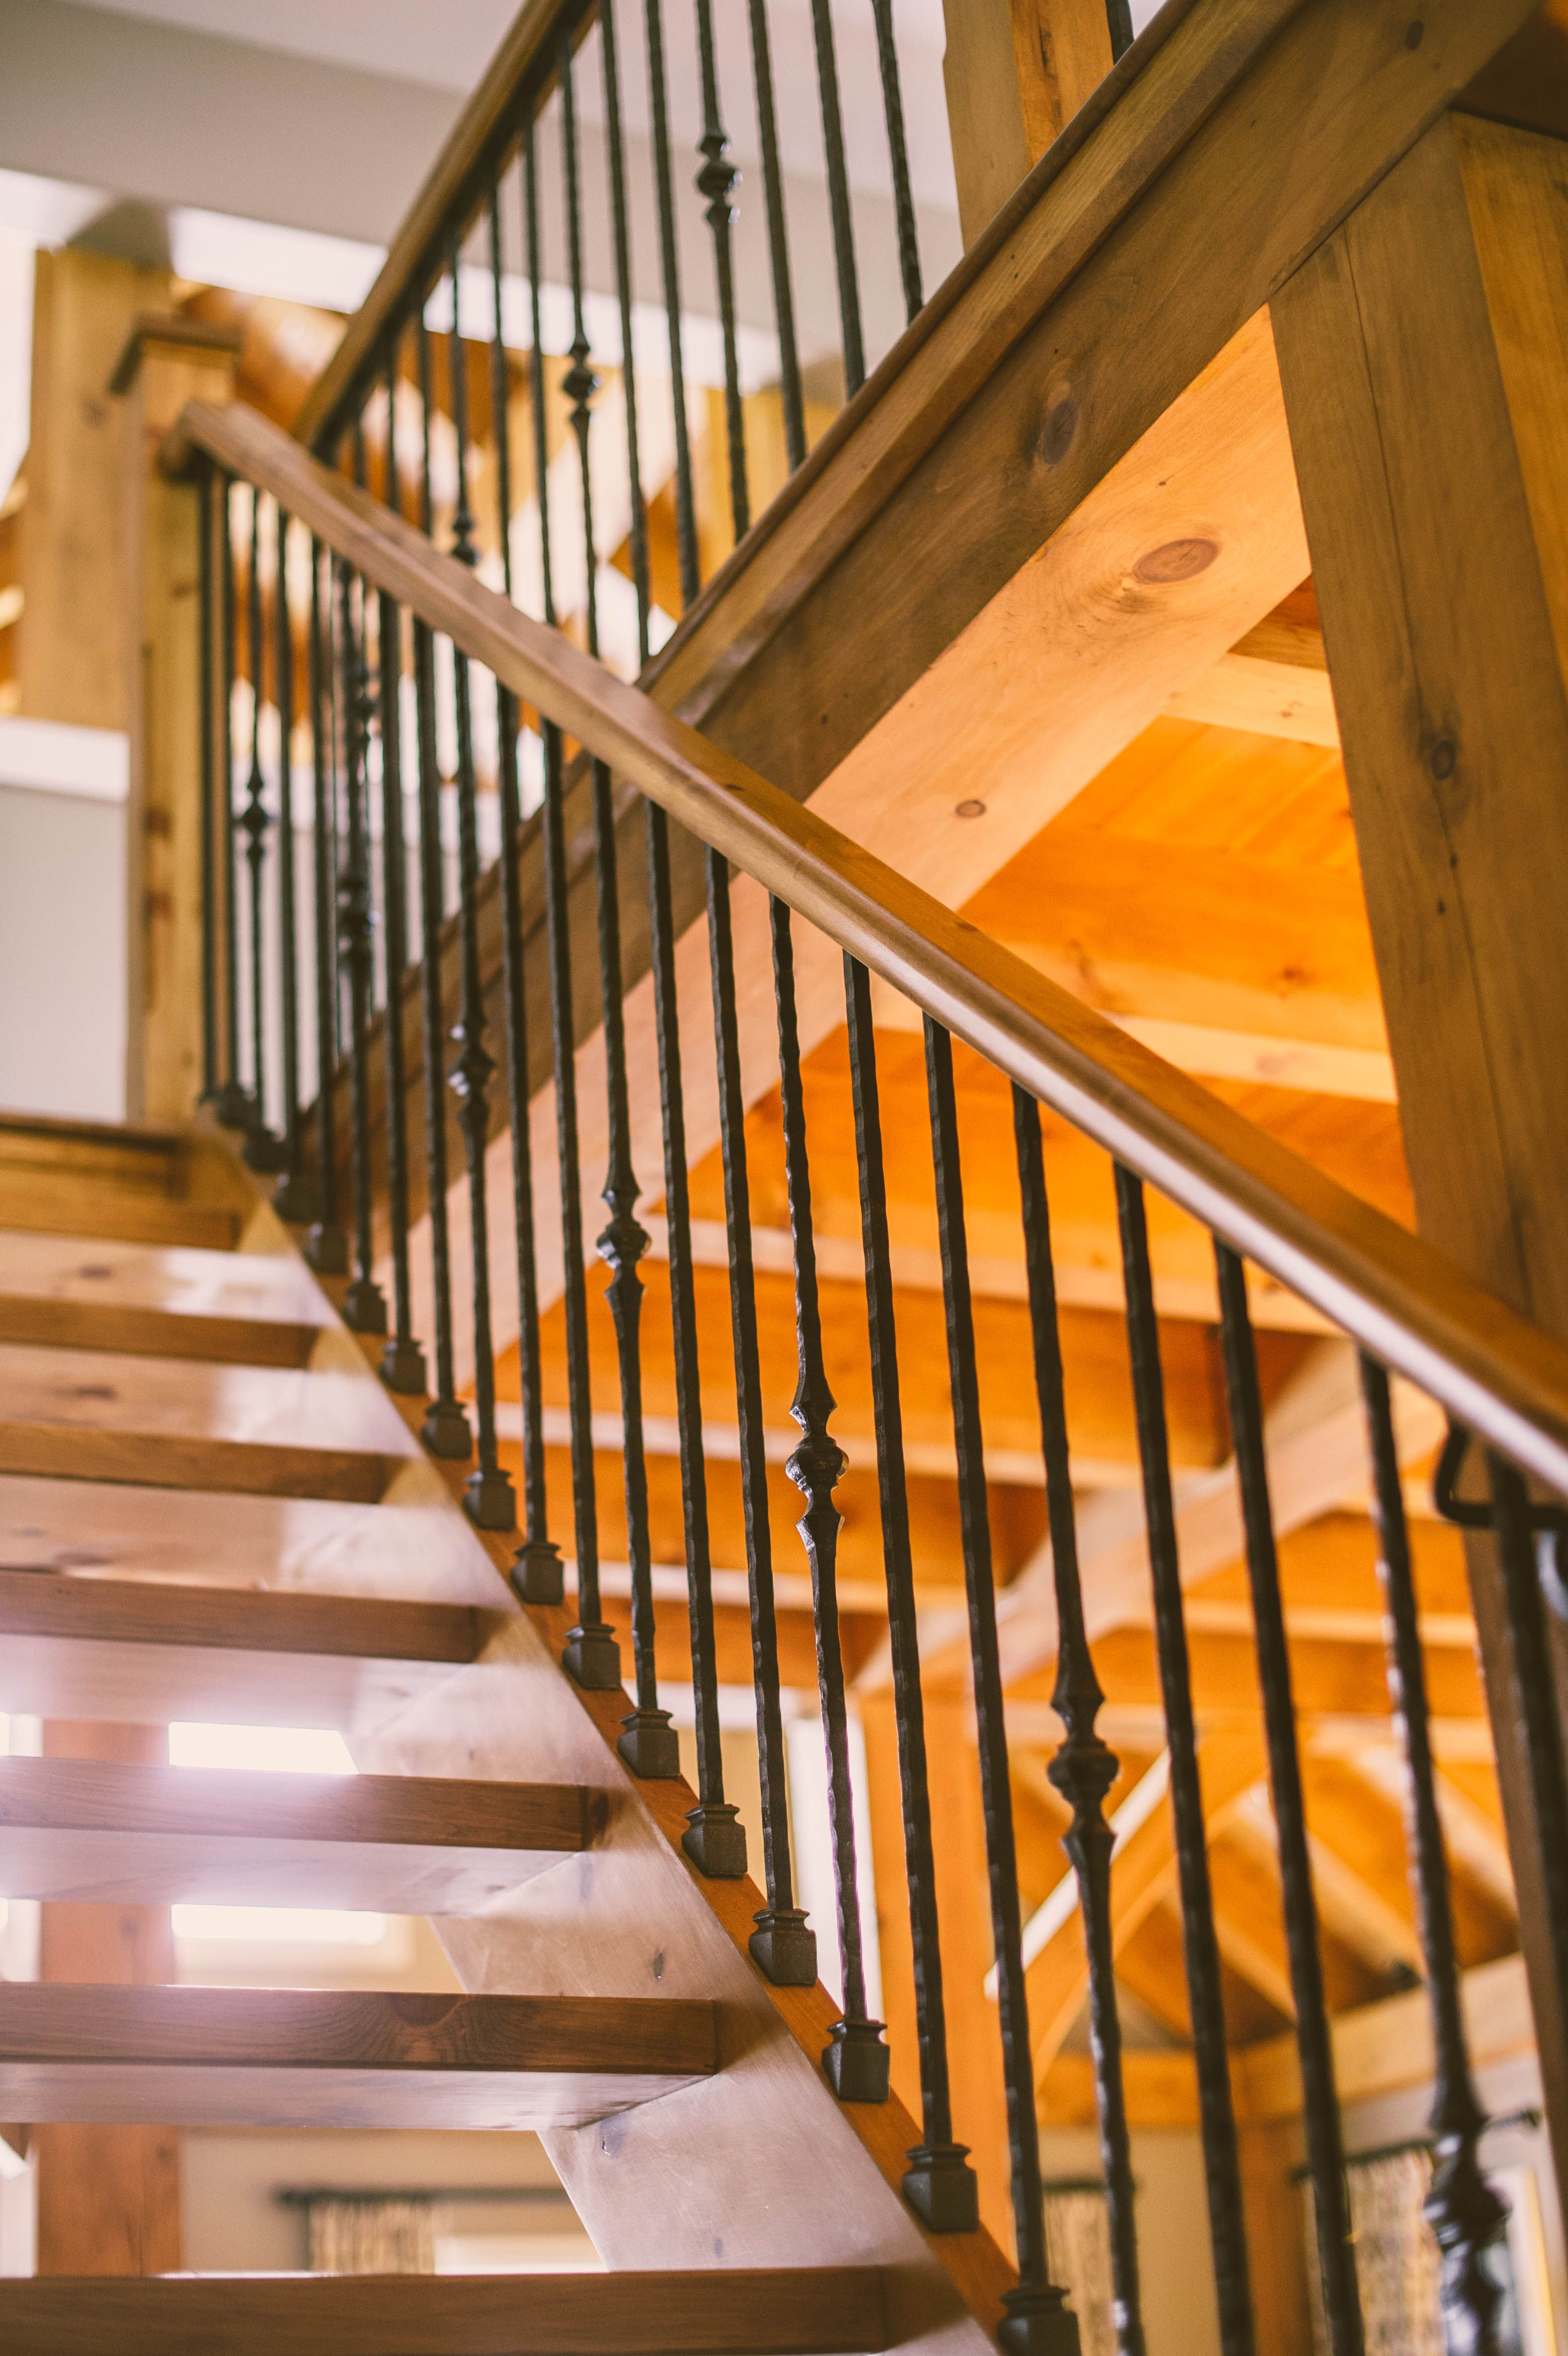 Marvelous Standard: Stain Grade Pine Stairs, Nosing And Railings With Open Tread To  The Loft